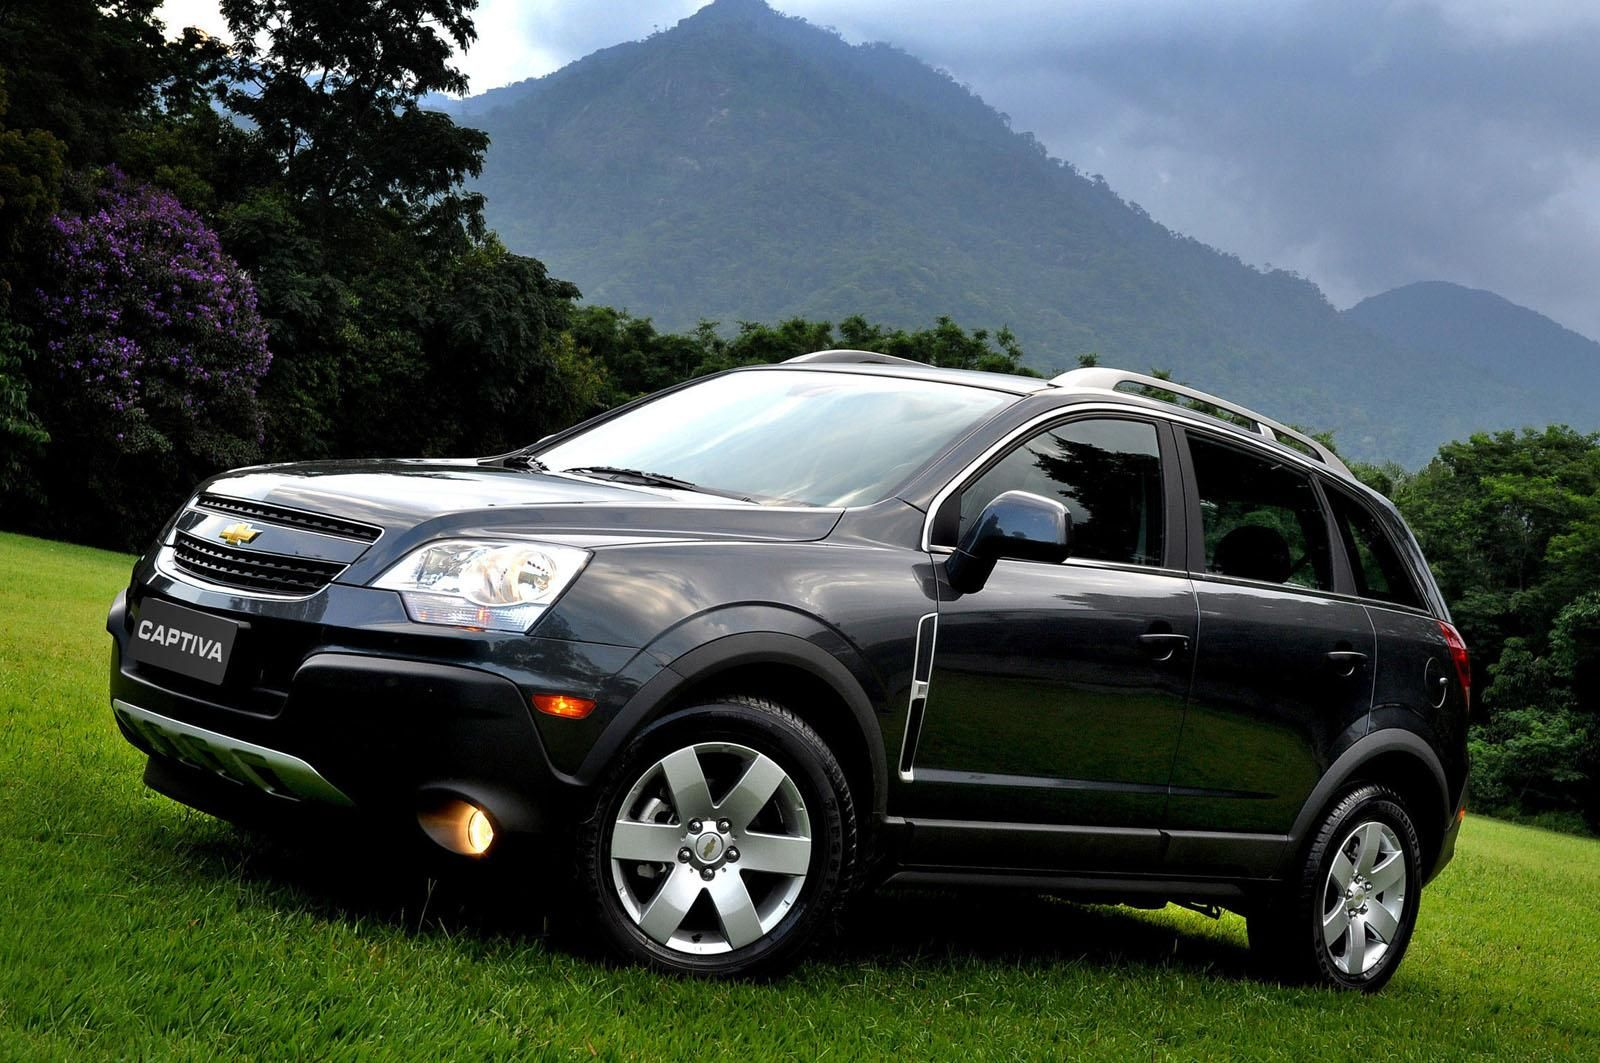 Chevy Captiva Sport Wallpapers Auto Power Girl Chevrolet Captiva Captiva Sport Chevrolet Captiva Sport